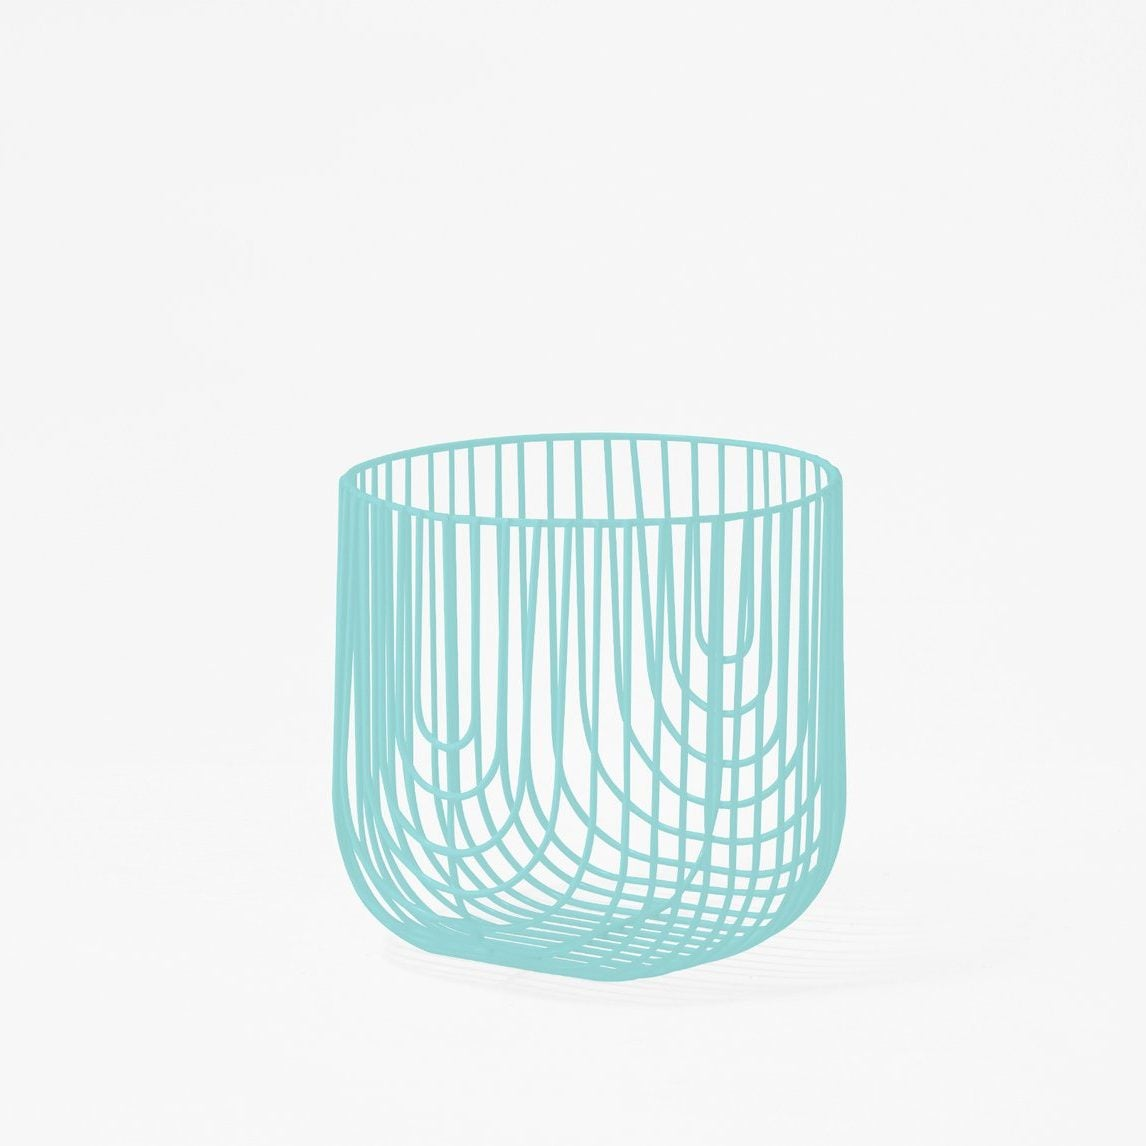 Shea McGee Just Shared Another Smart Use for the Humble Kitchen Basket